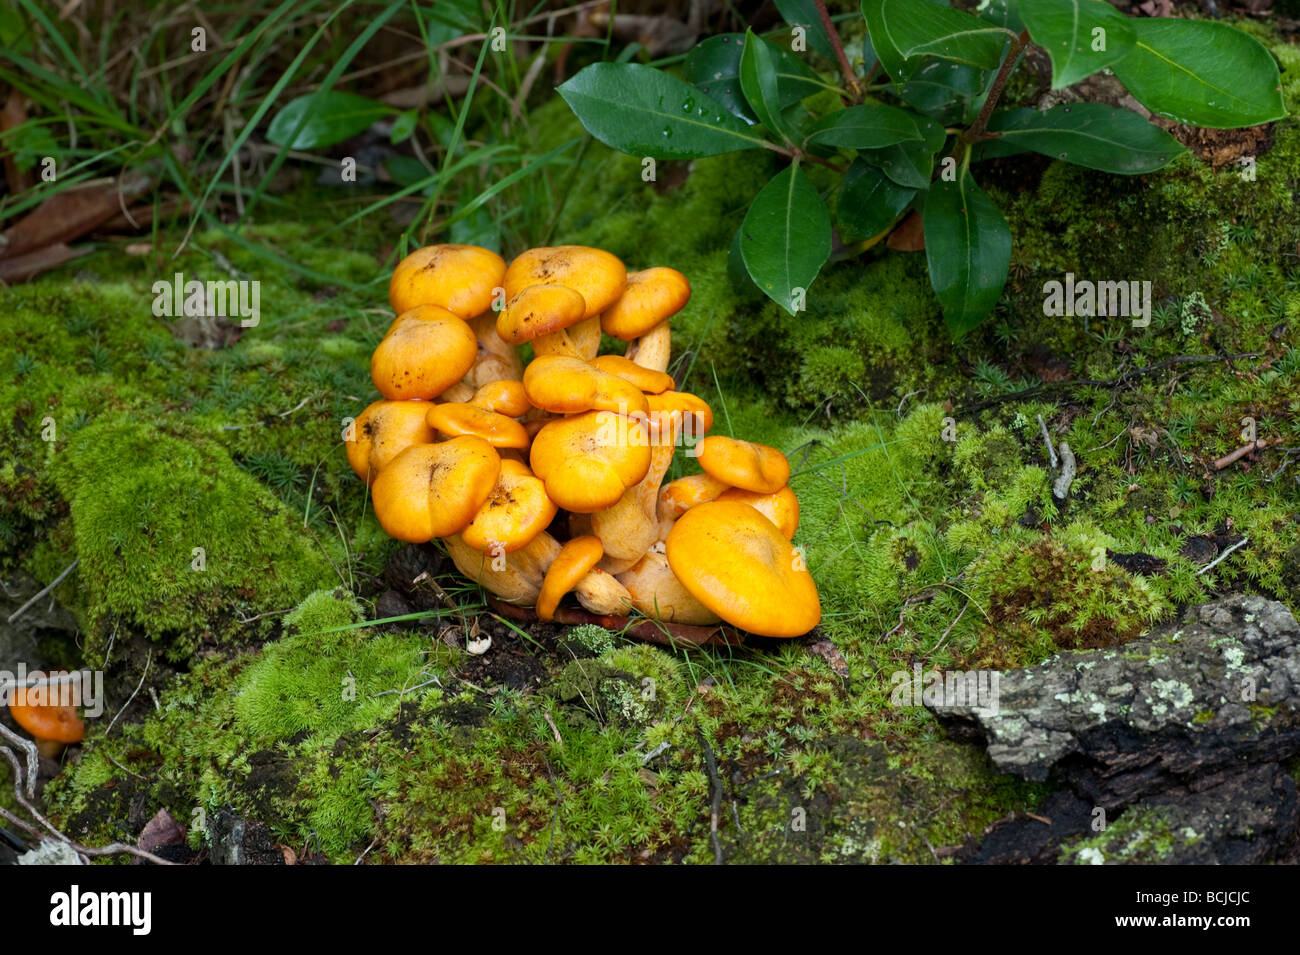 wild mushrooms growing on green lawn and grass stock photo